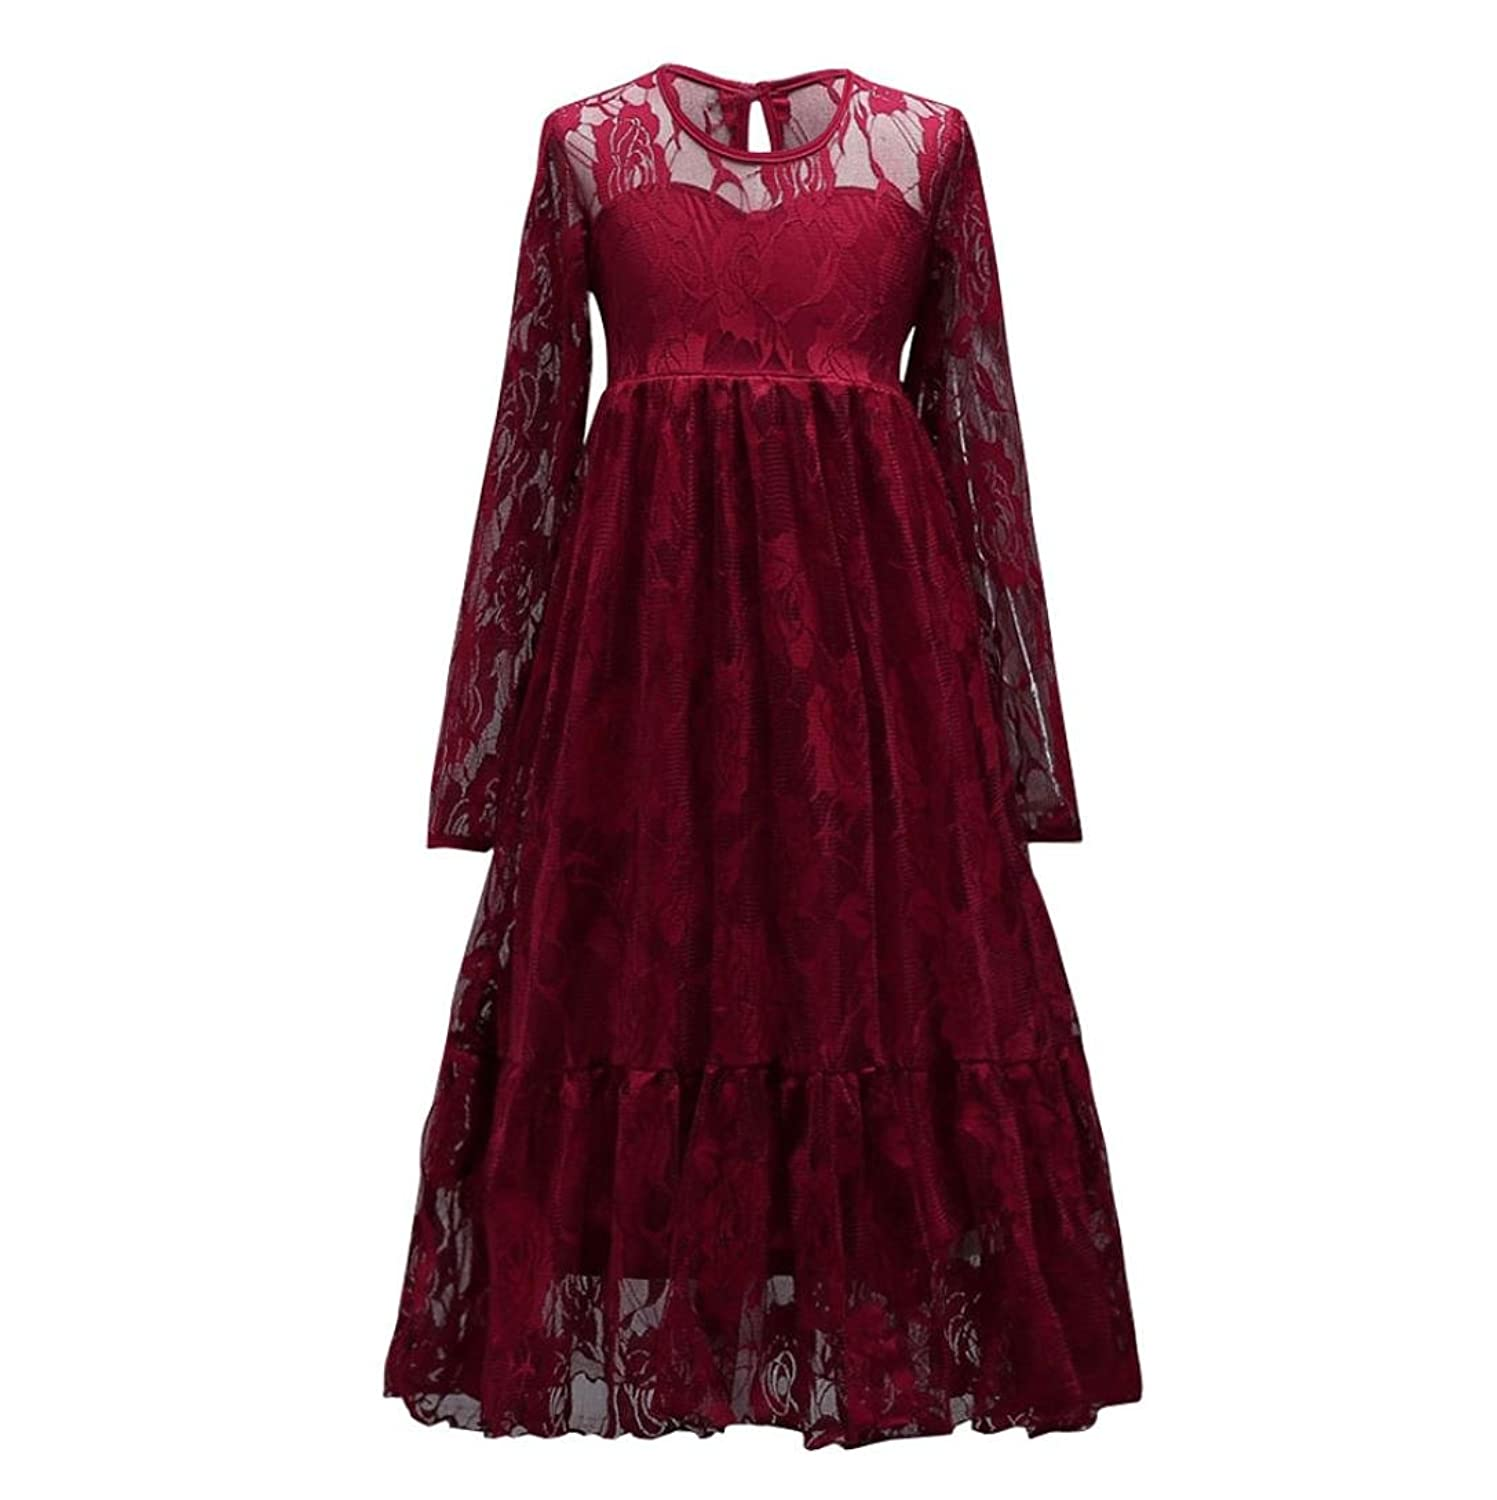 Connia children Kids Fashion Dress Girls Lace Princess Bridesmaid Pageant Tutu Tulle Gown Party Wedding Dress